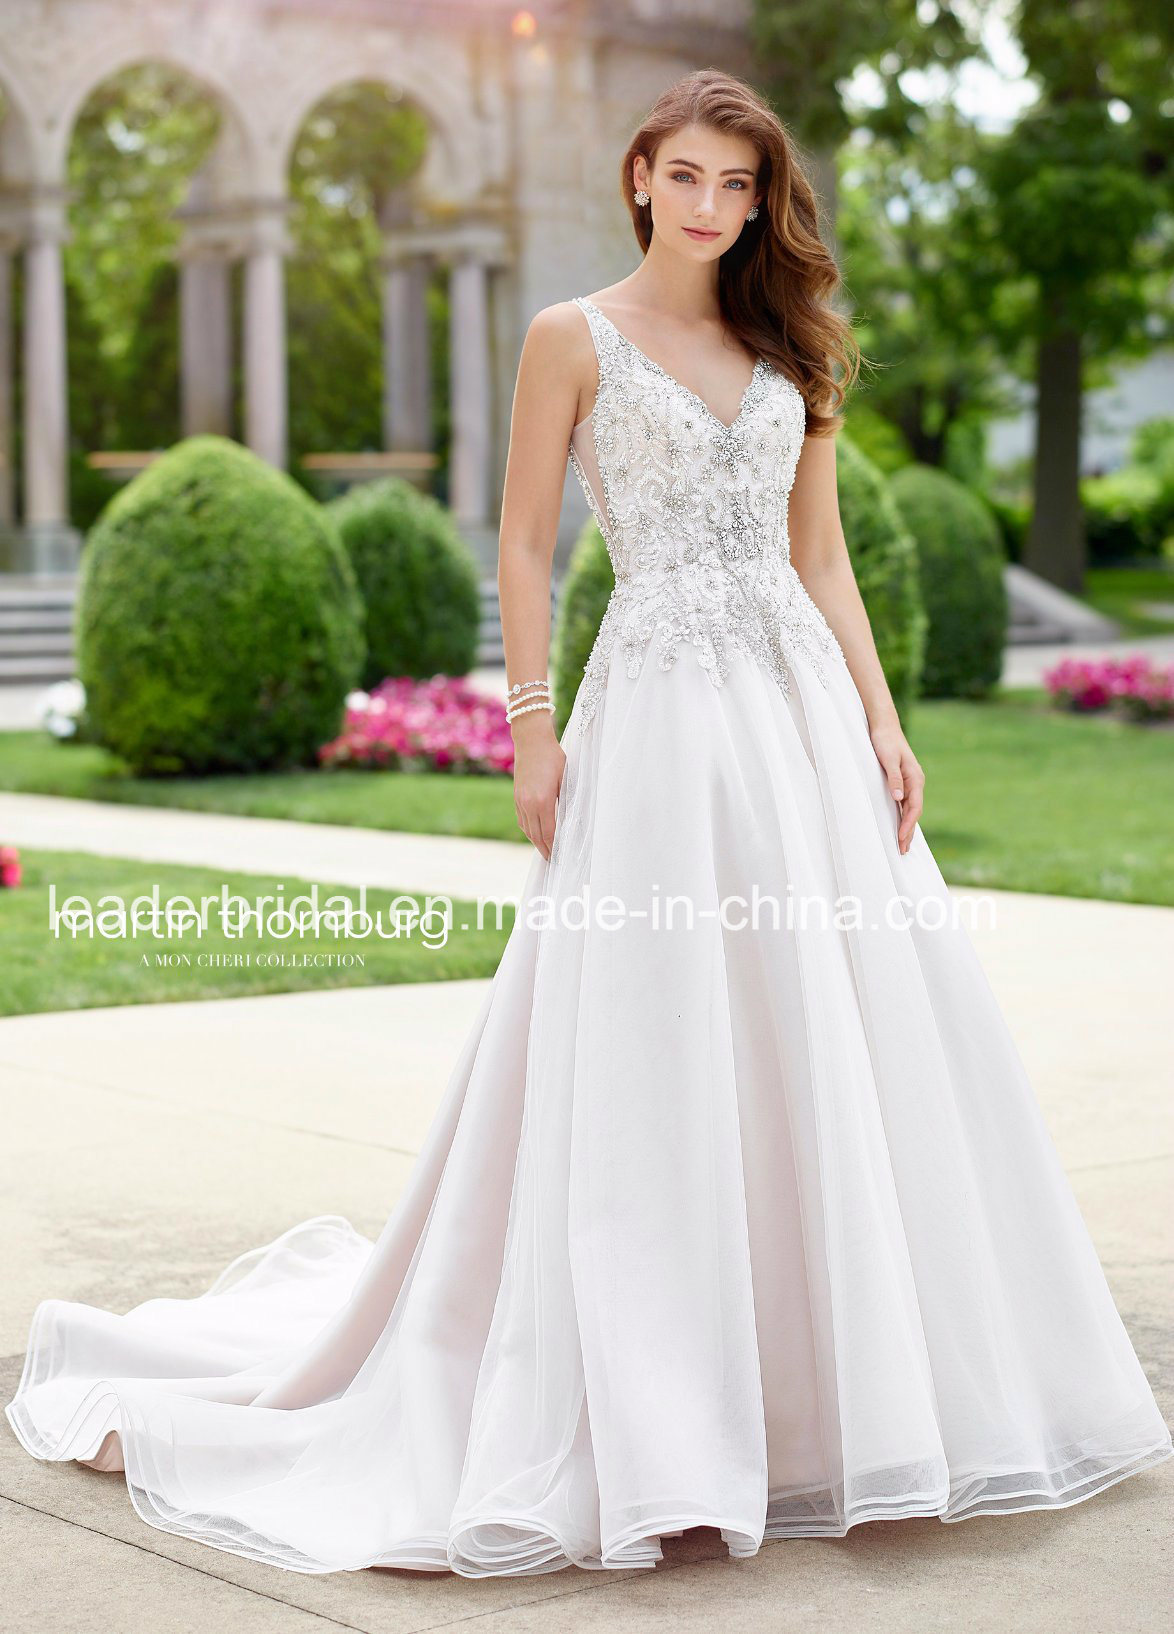 4461e7a662 Wedding Dress Images 2018